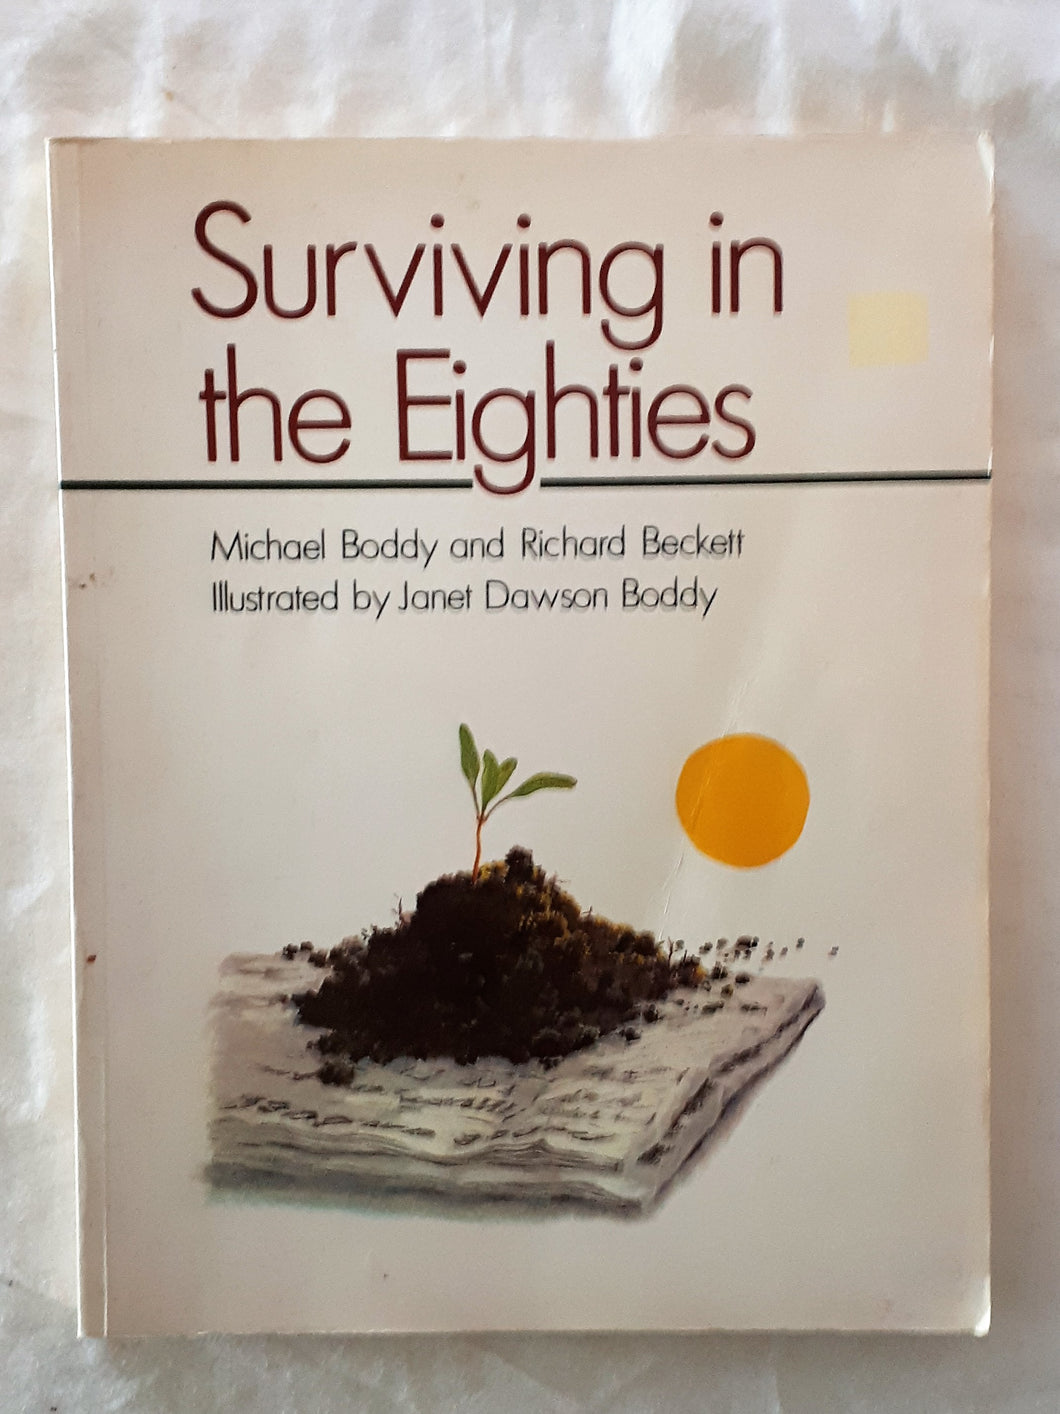 Surviving in the Eighties by Michael Boddy and Richard Beckett